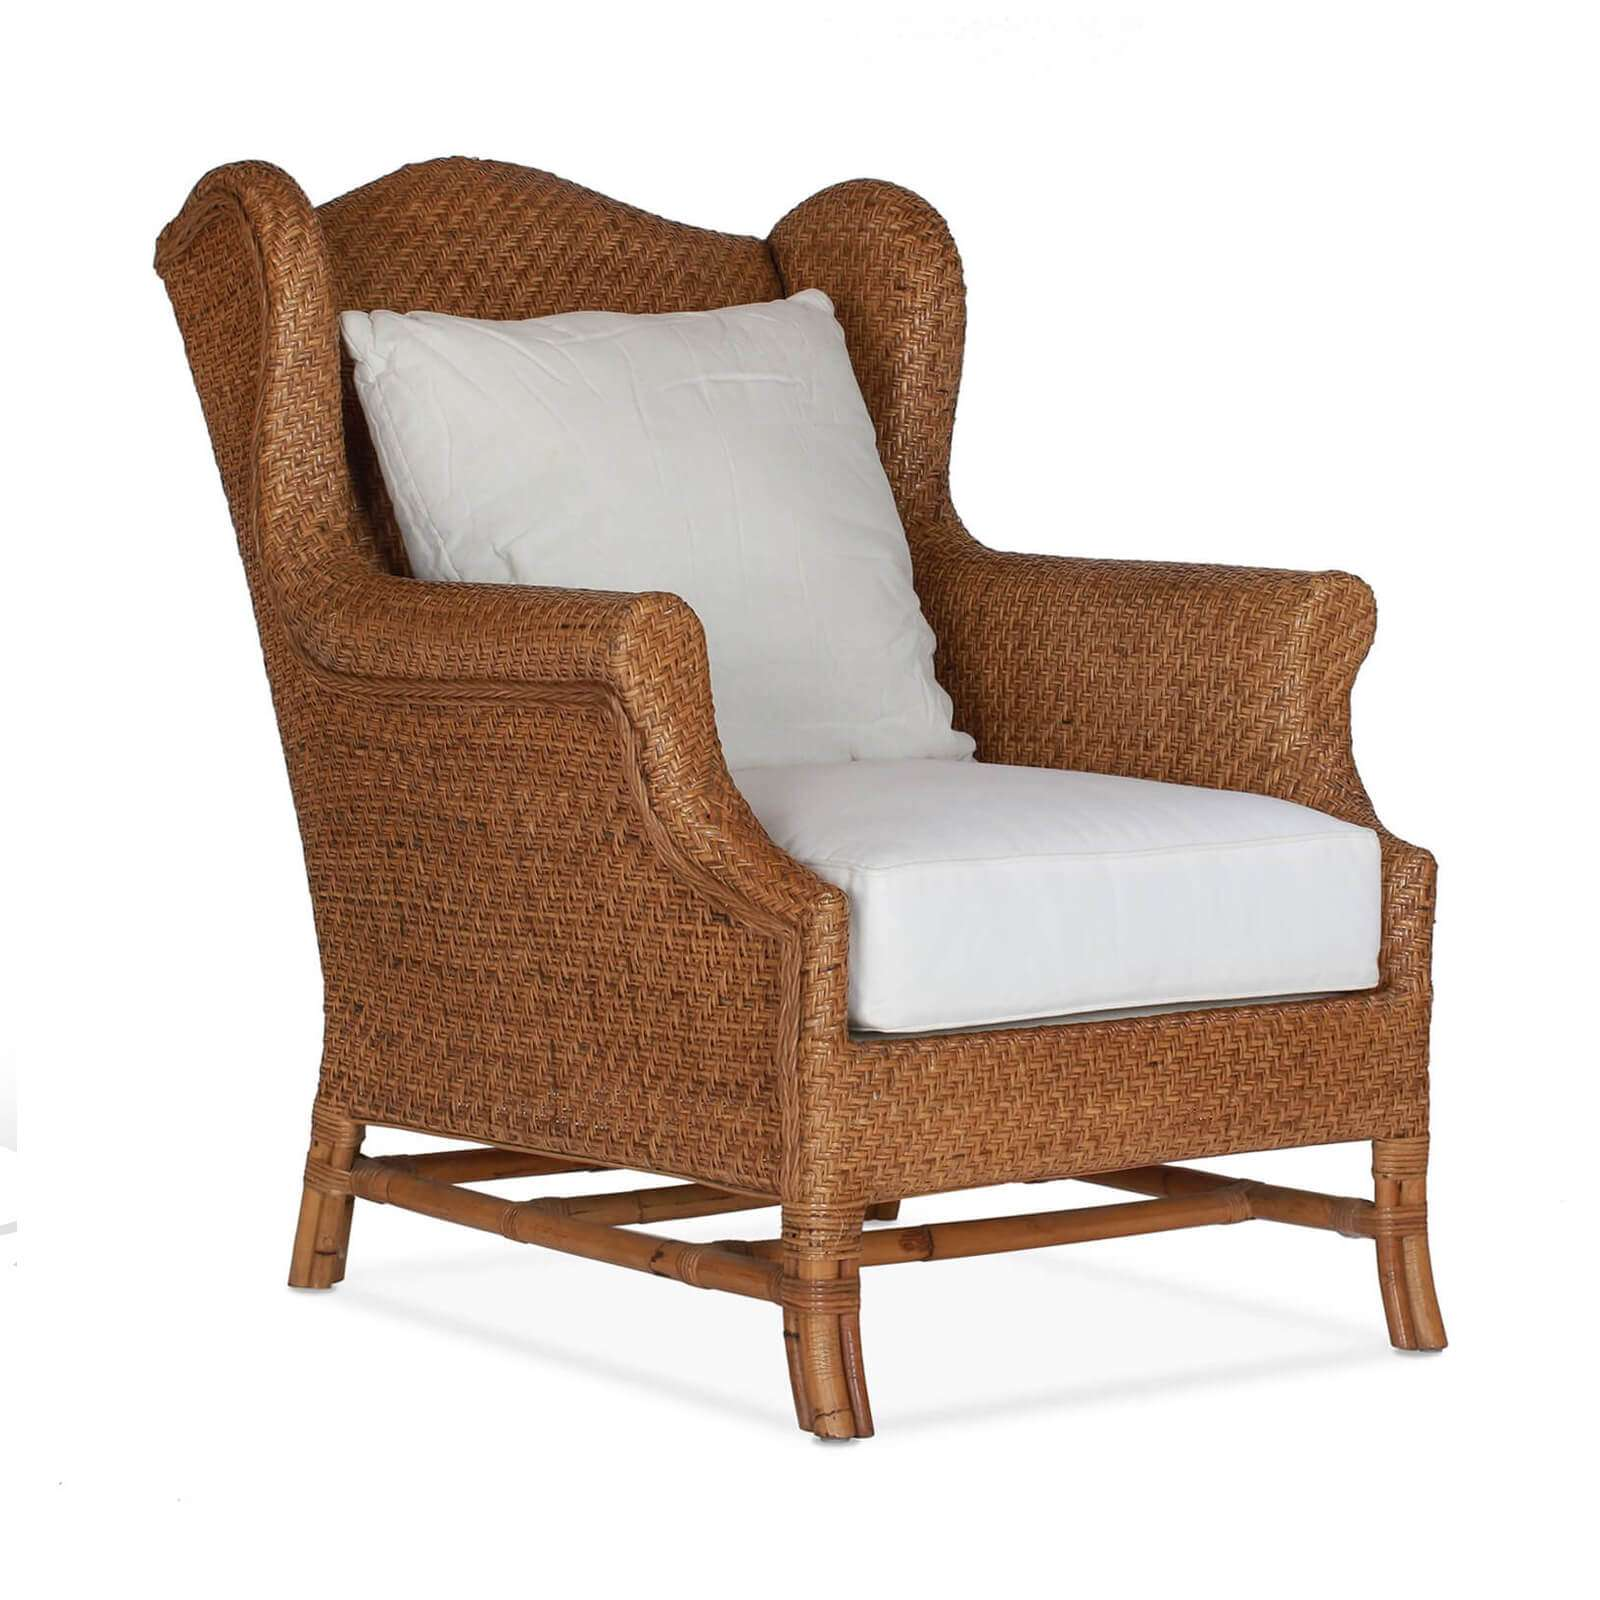 SAVANNA WING CHAIR